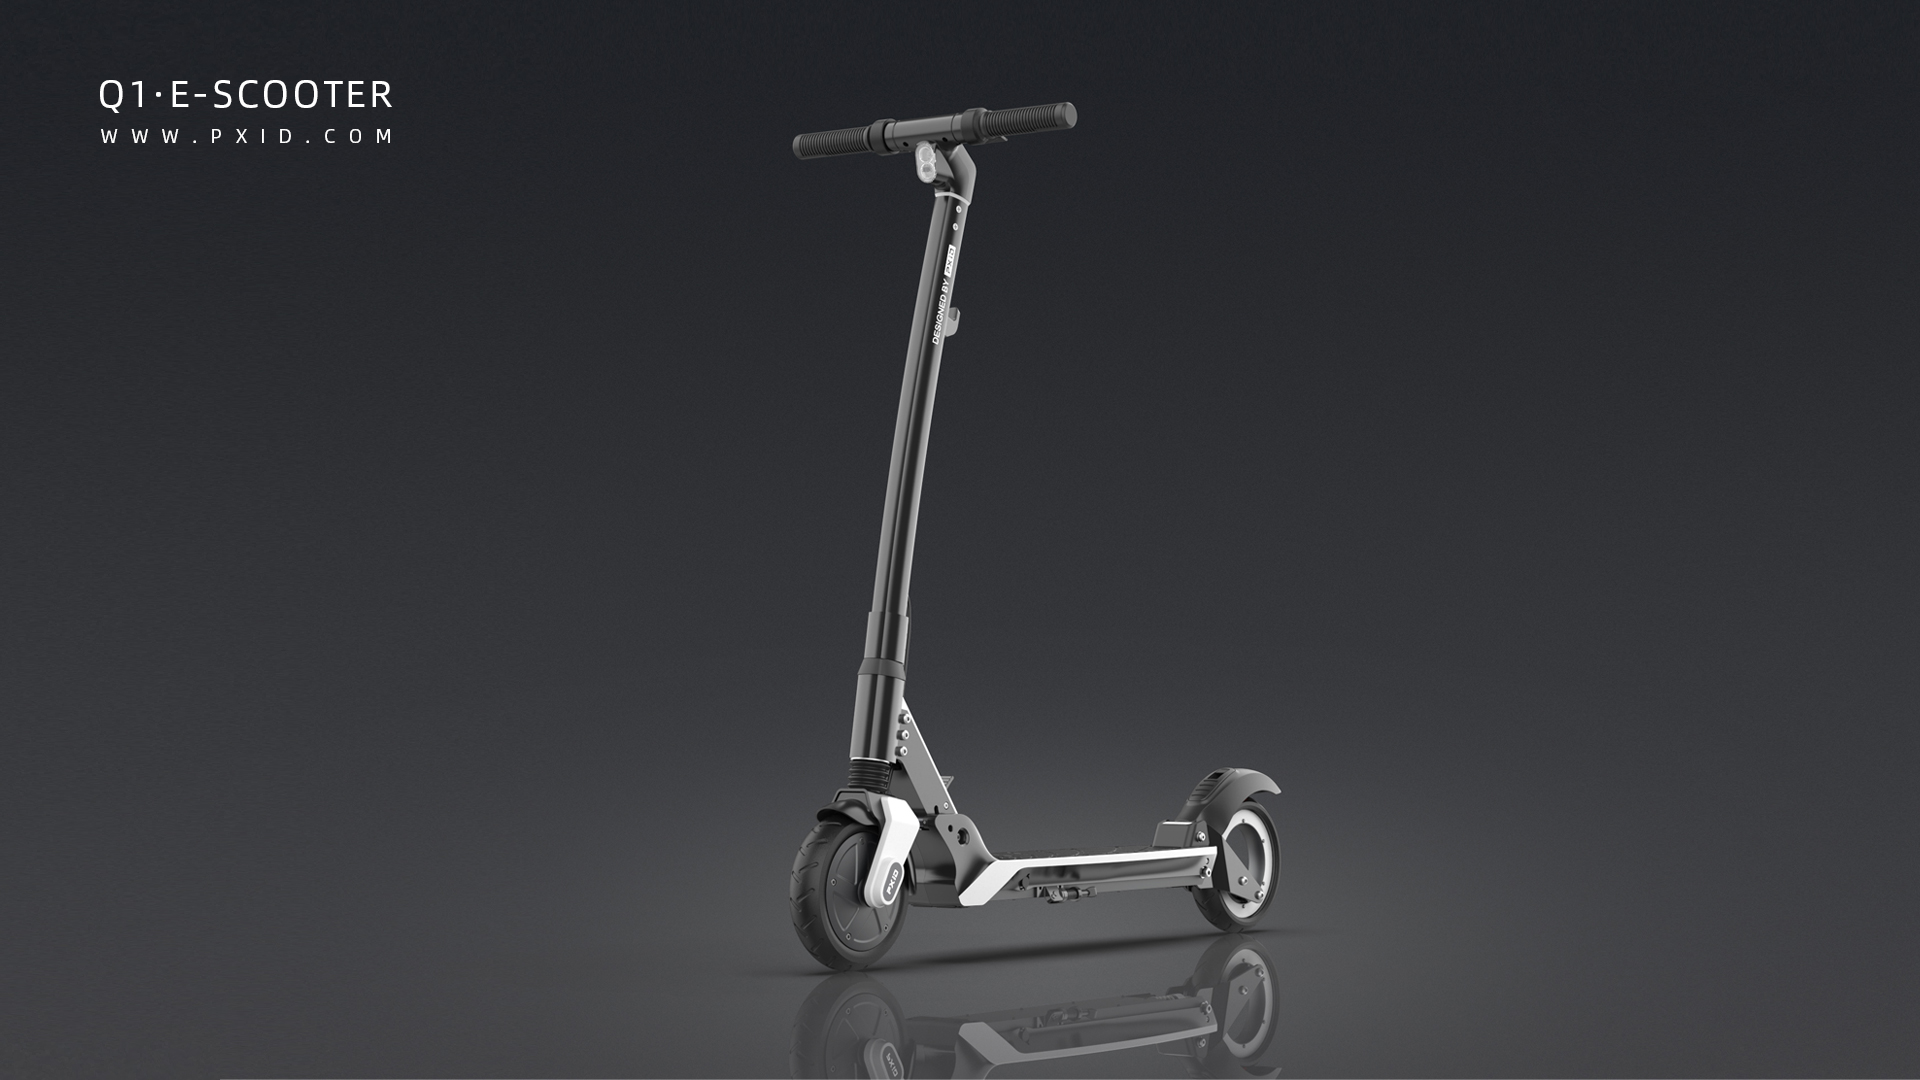 2020 PXID new electric scooter design